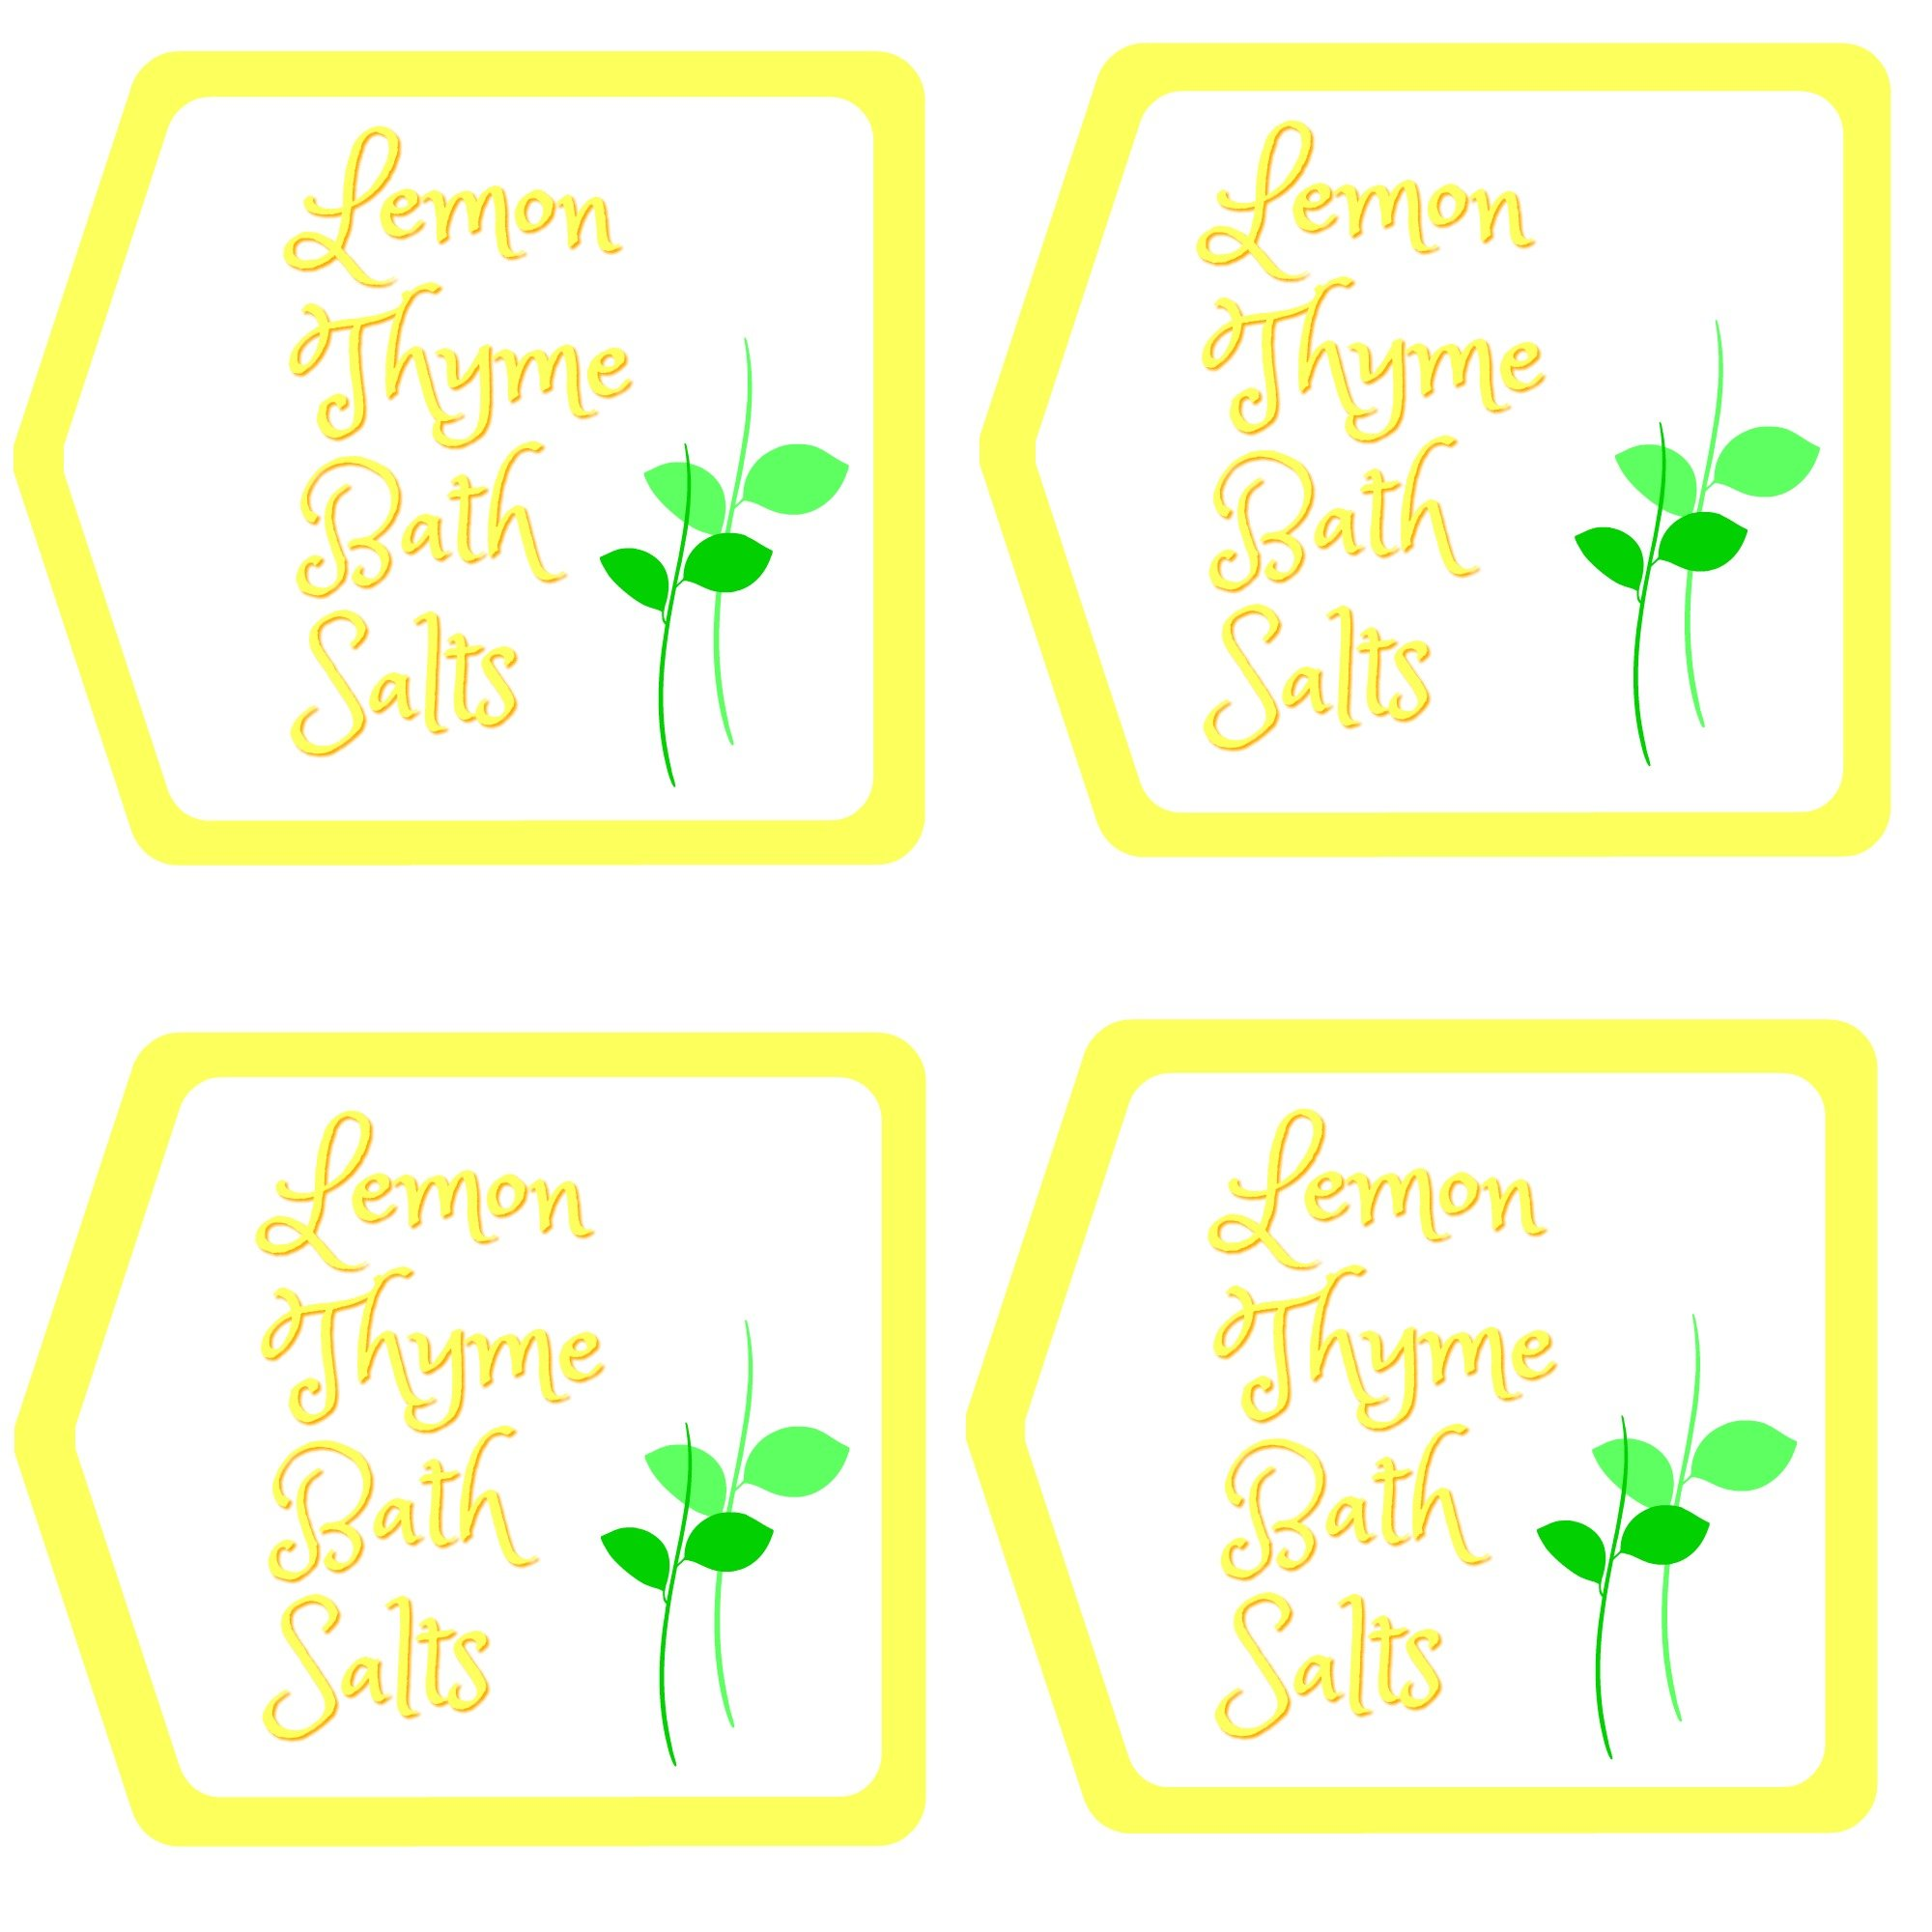 lemon-thyme-bath-salts-printable-tag